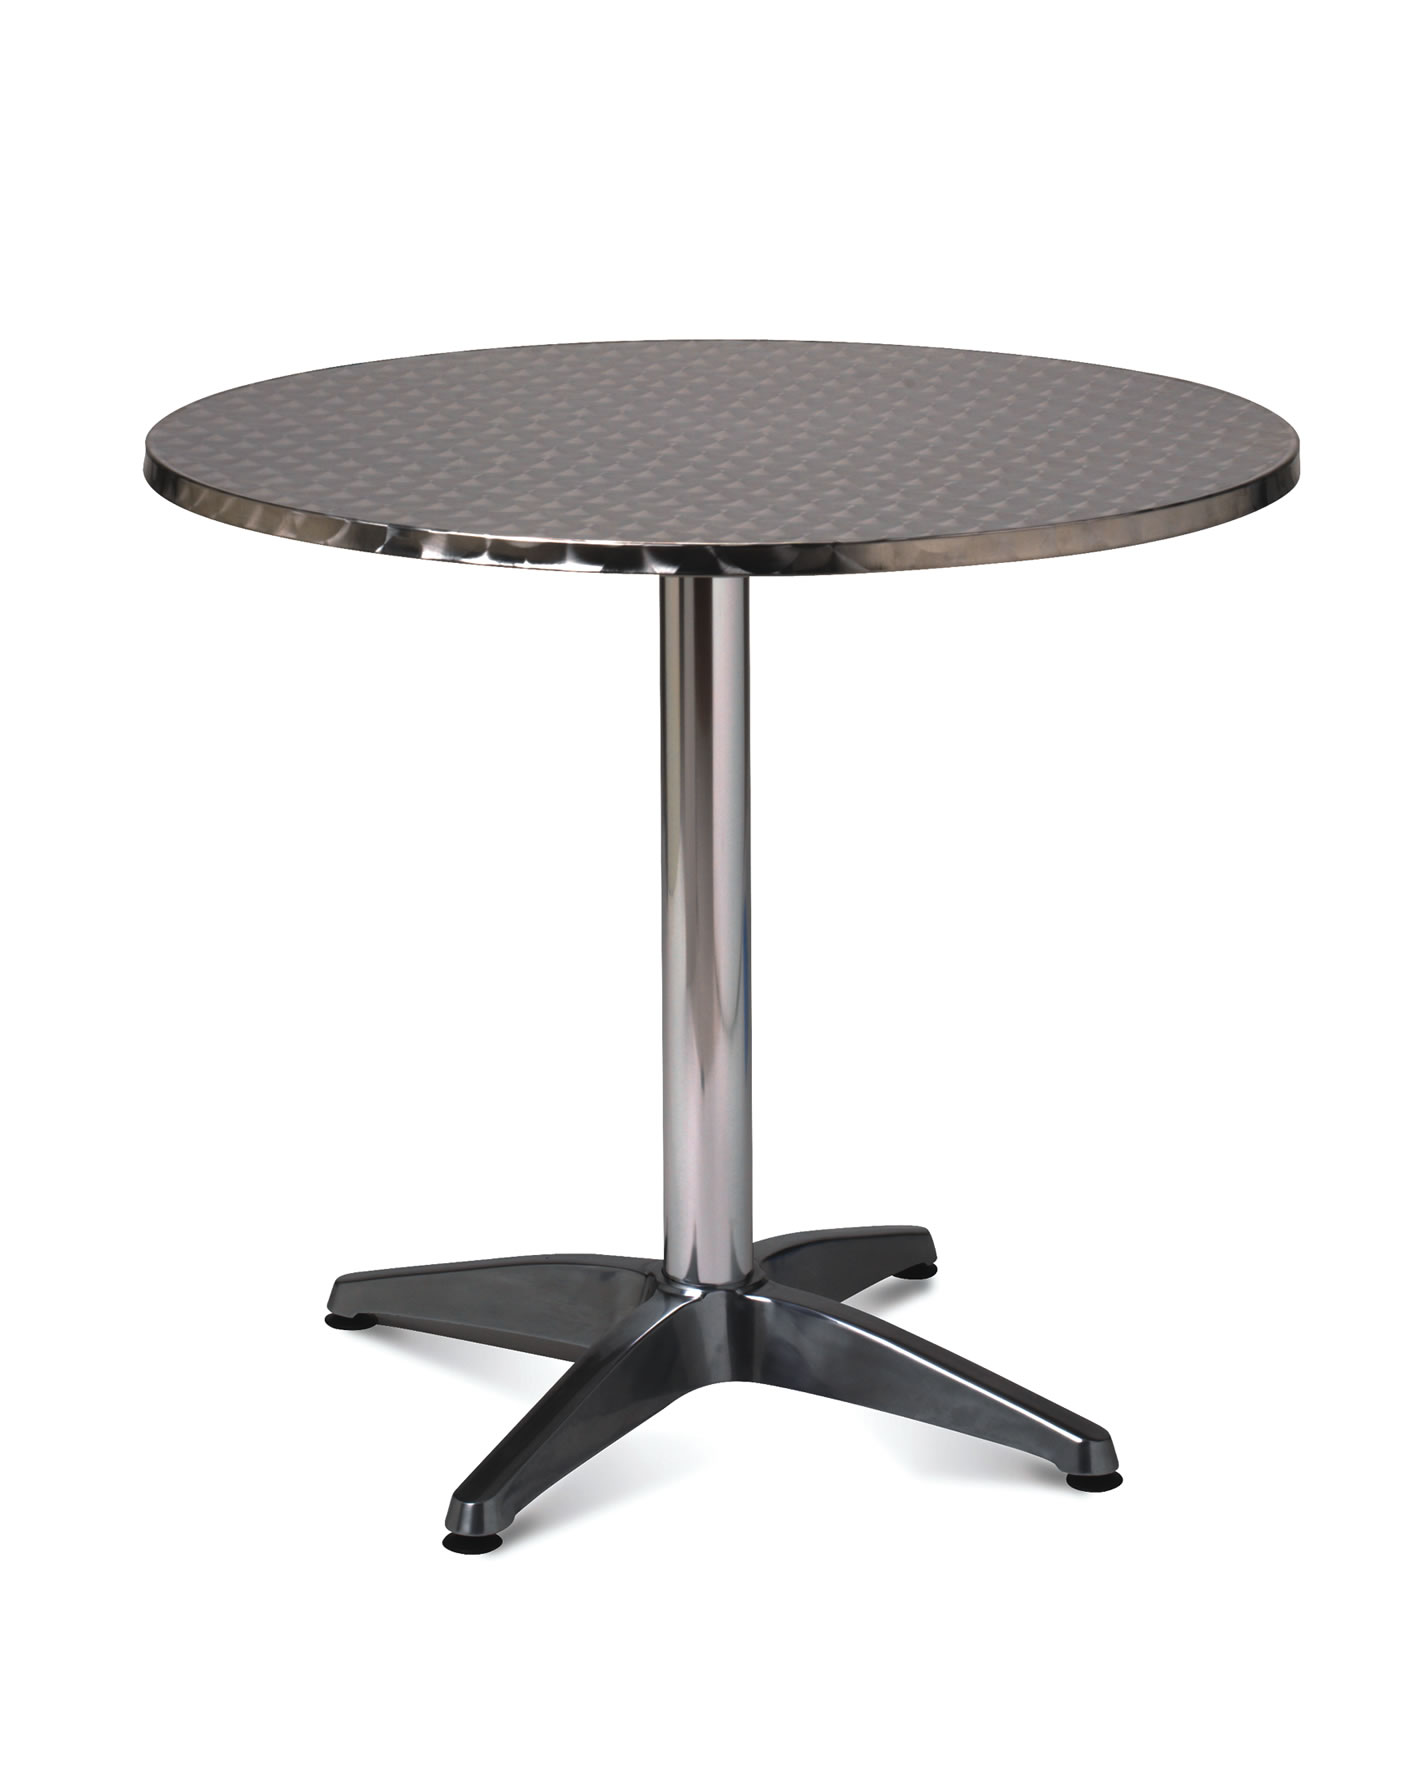 1896 ALUMINIUM ROUND DINING TABLE 80CM